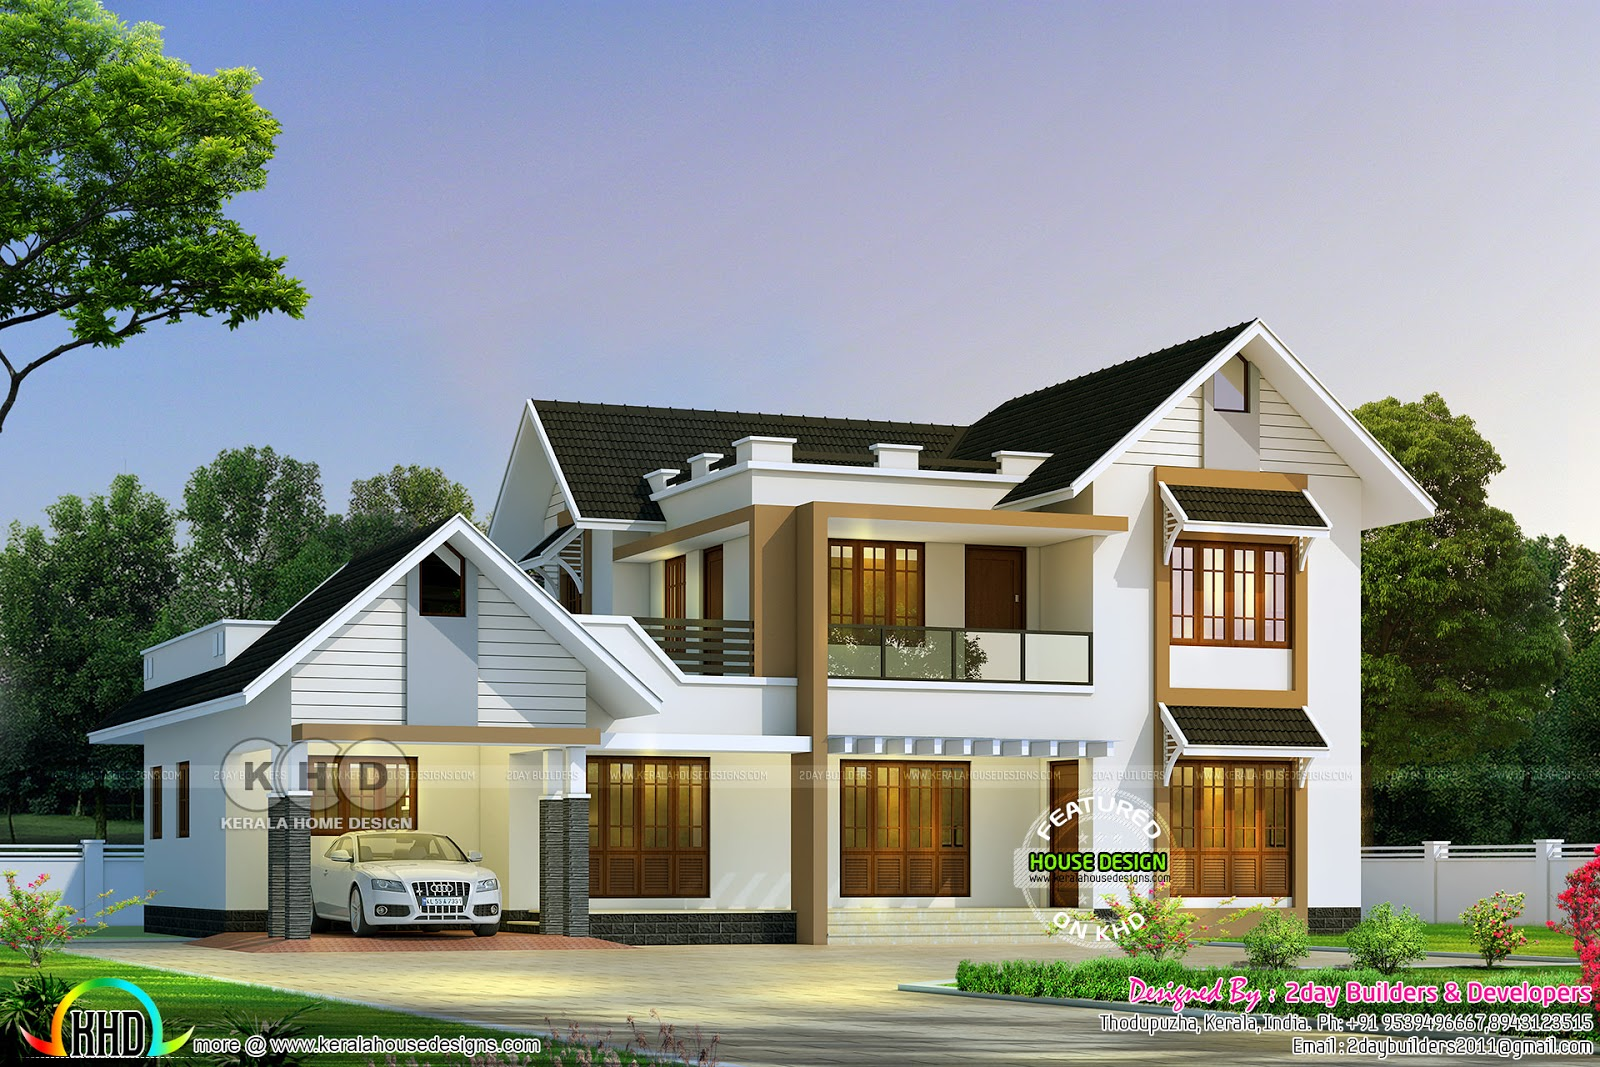 2017 kerala home design and floor plans for Kerala home designs contemporary